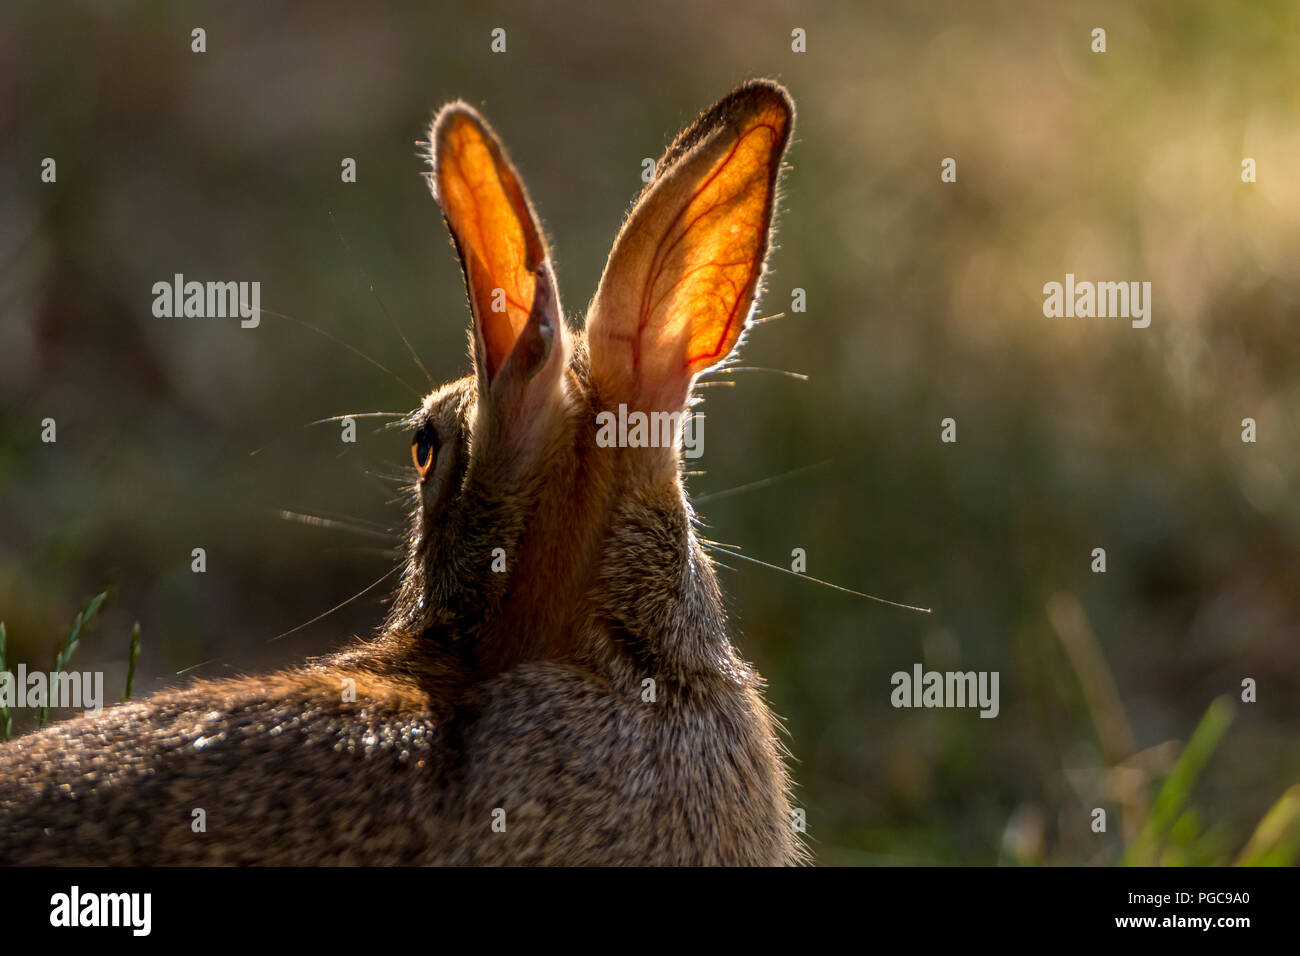 The Sun Shining Through A Eastern Cottontail Rabbit S Ears Reveal